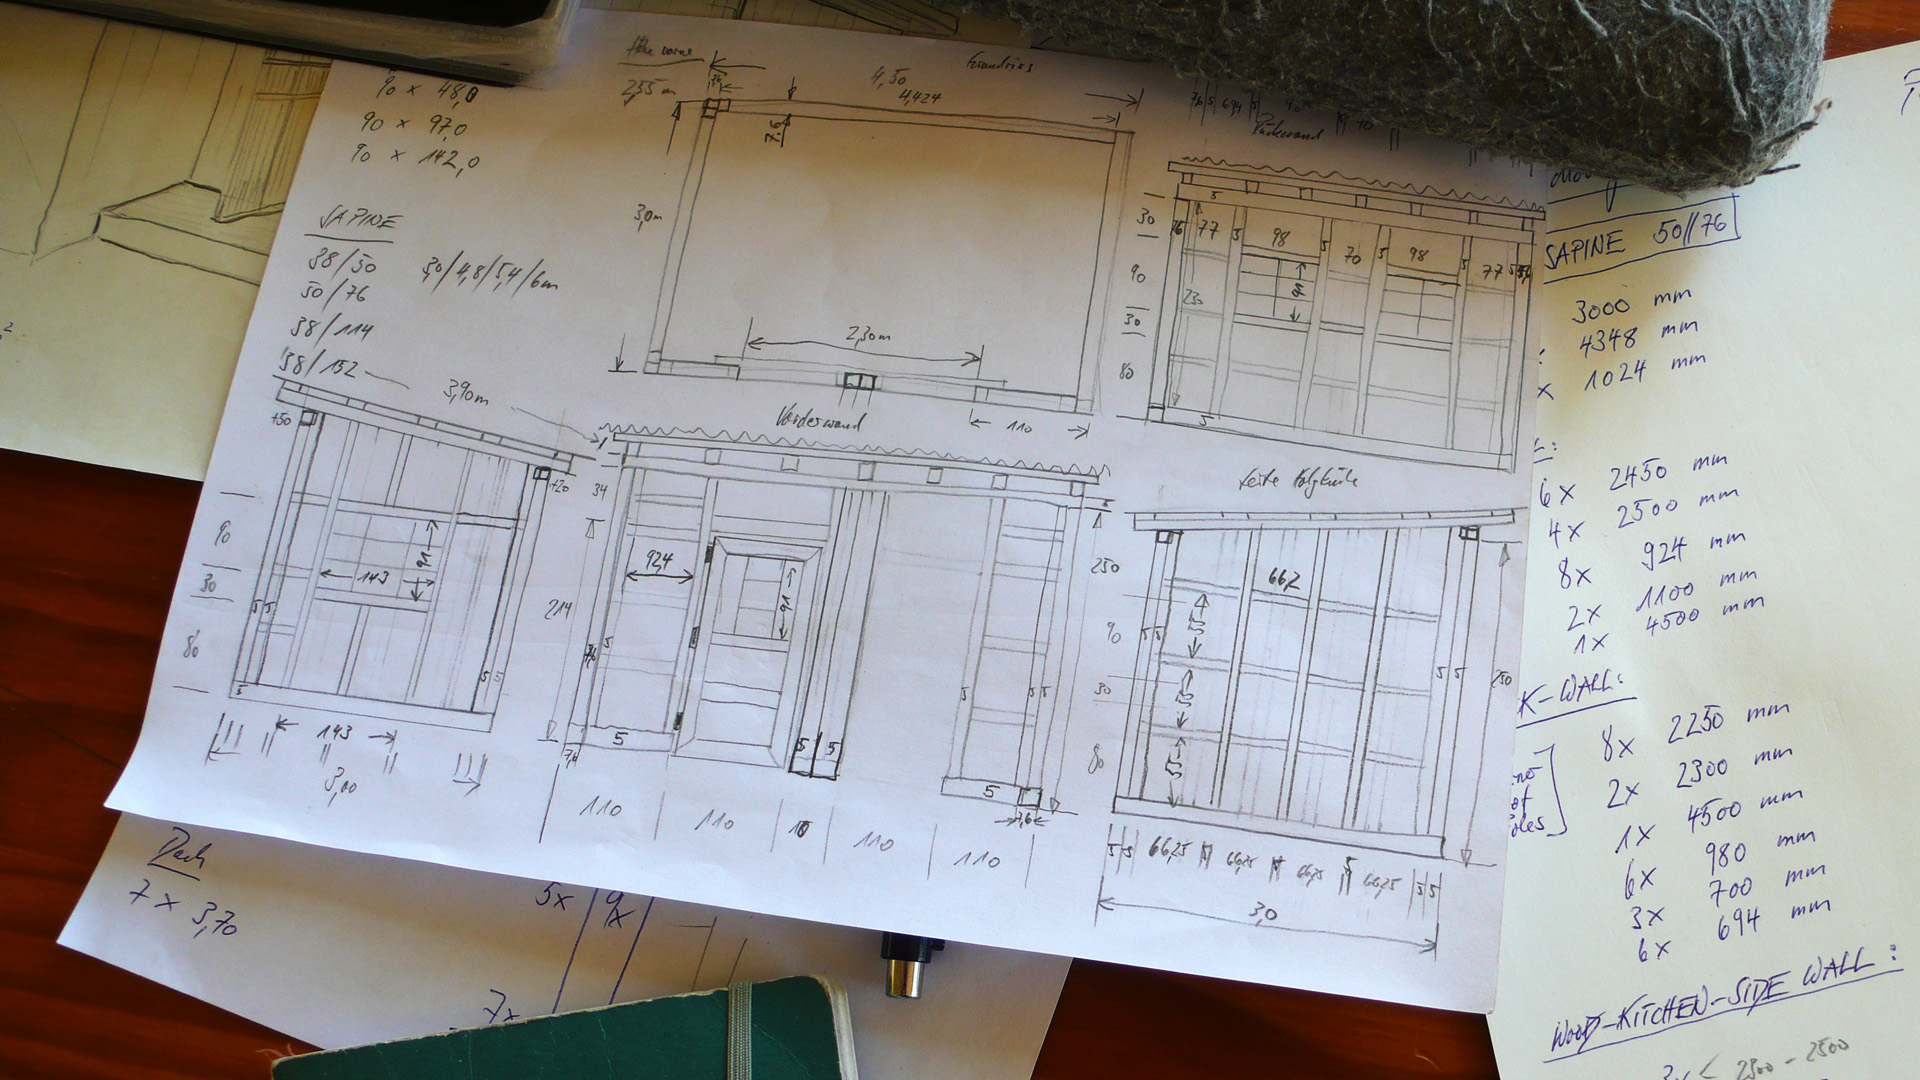 construction drawing of the schoolgarden kitchen